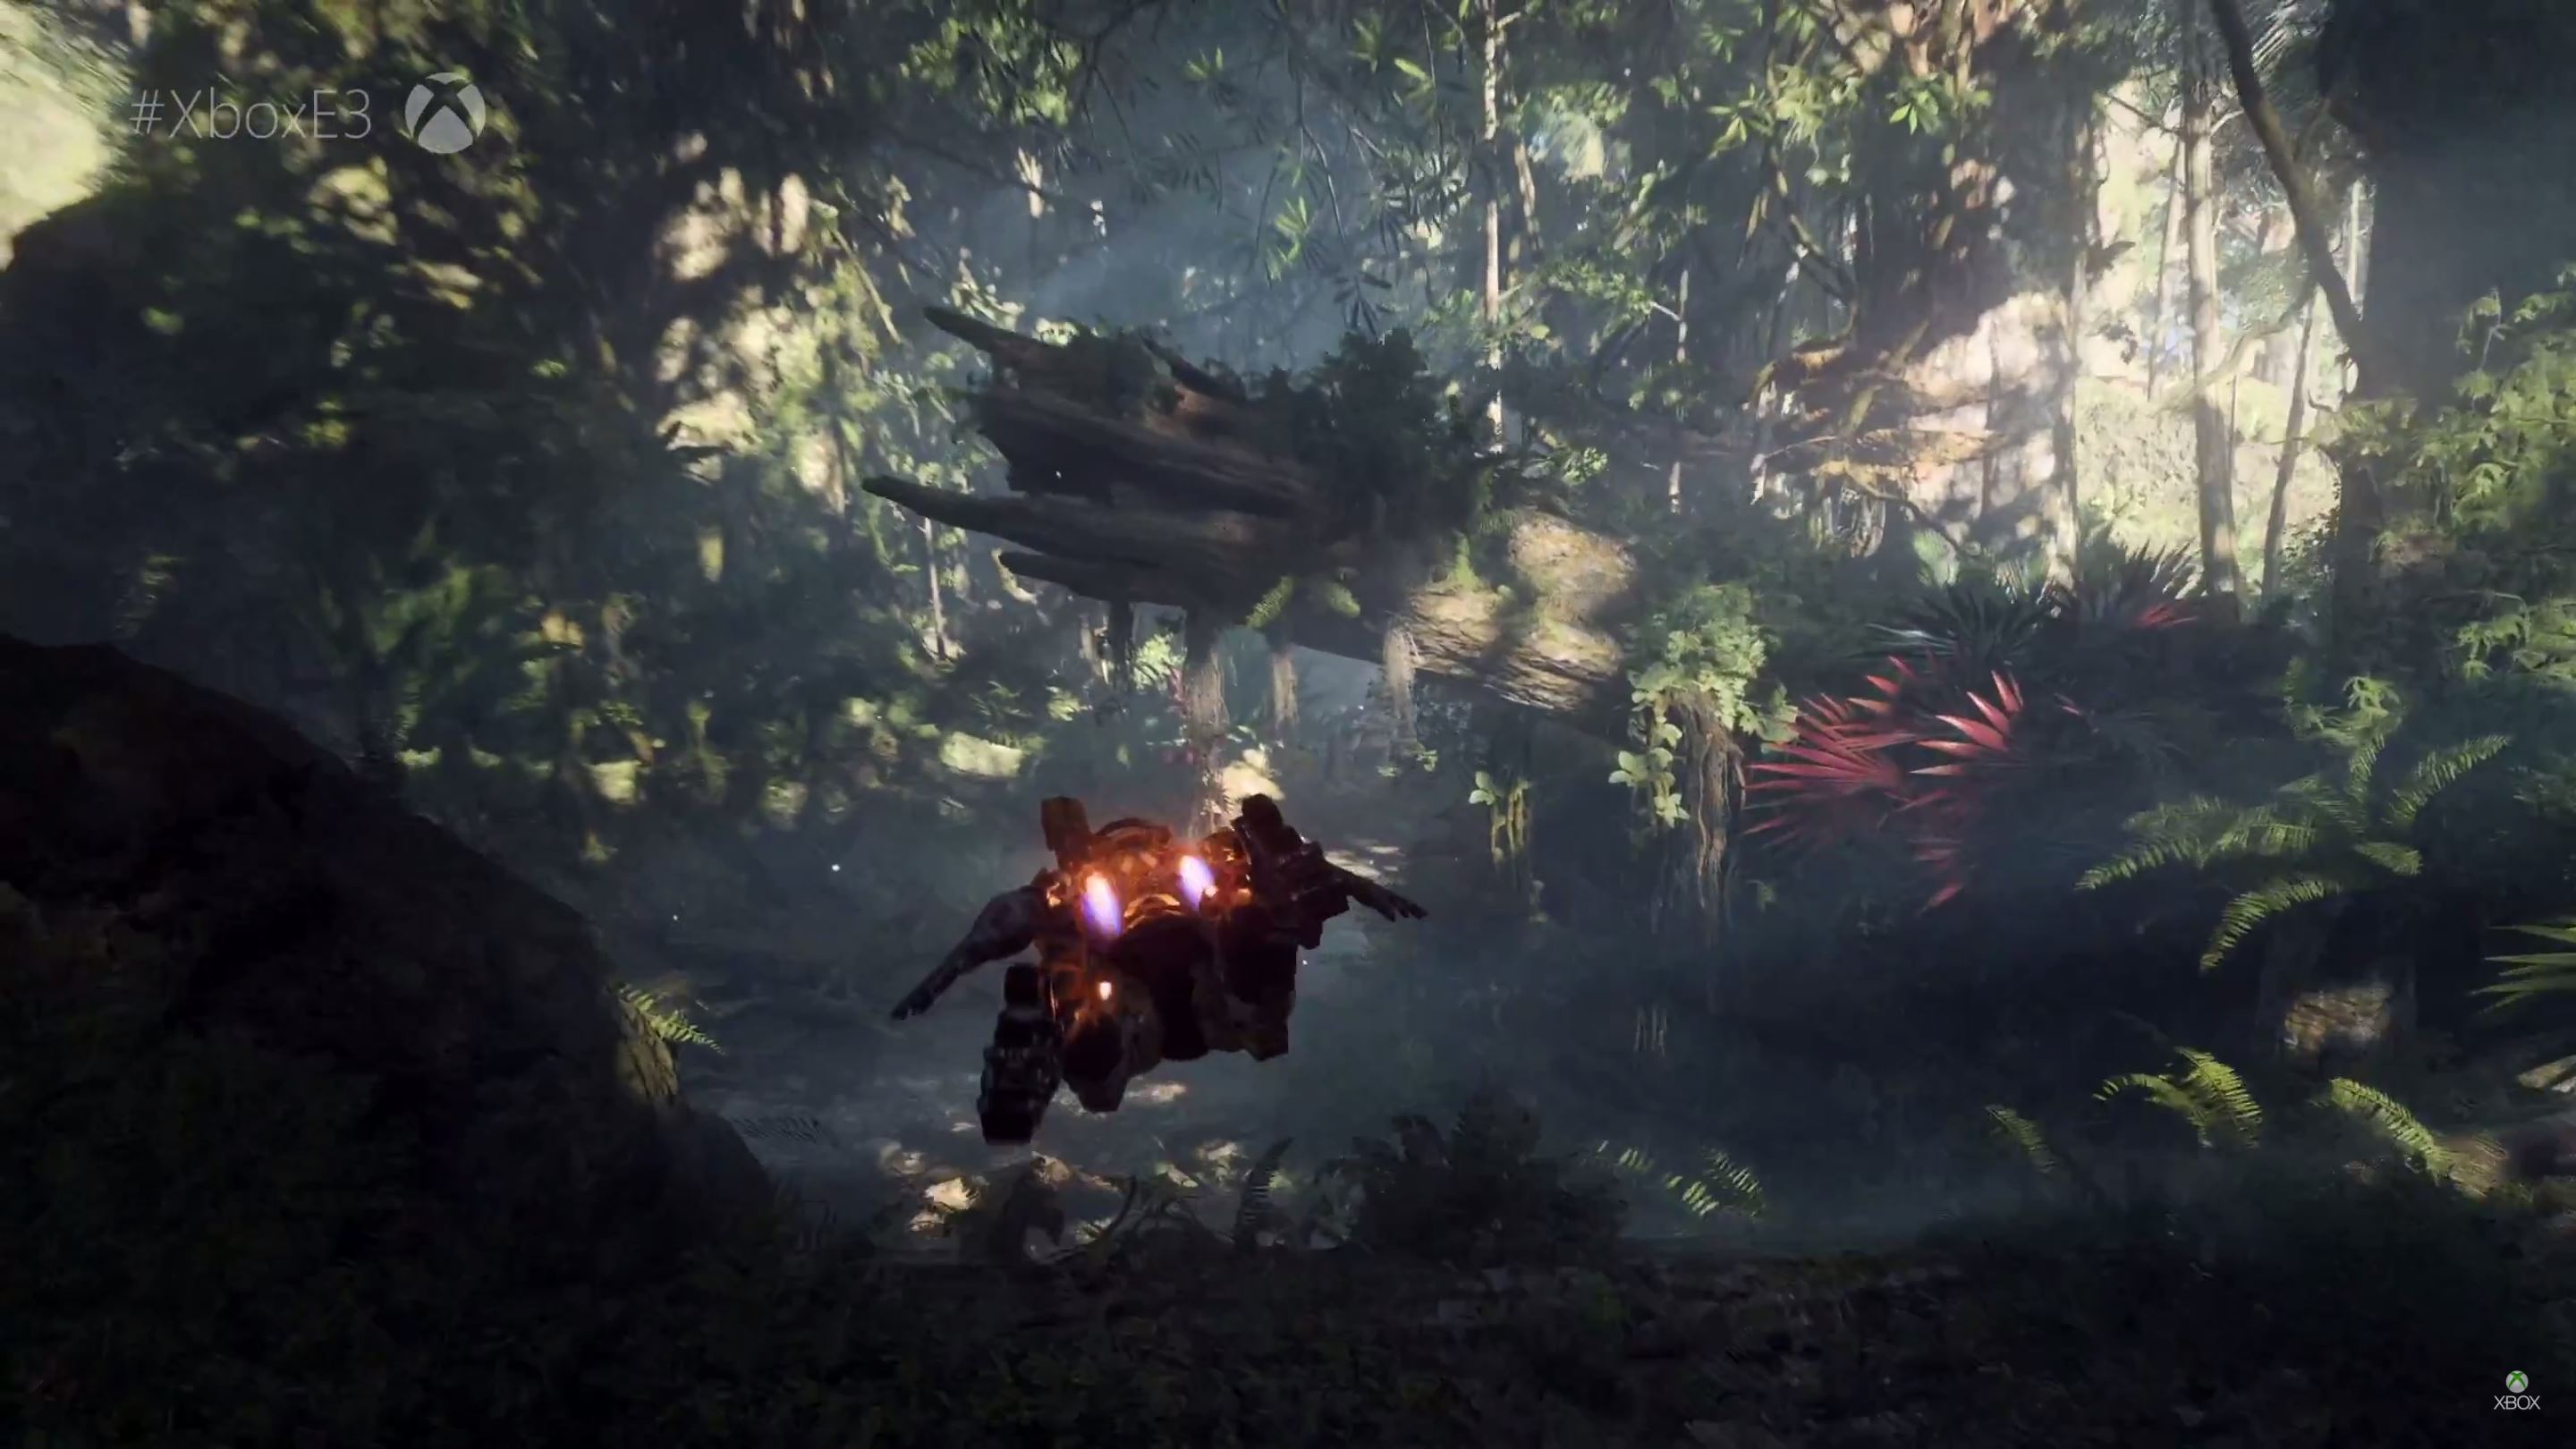 Here's some in-engine gameplay from BioWare's new IP Anthem screenshot